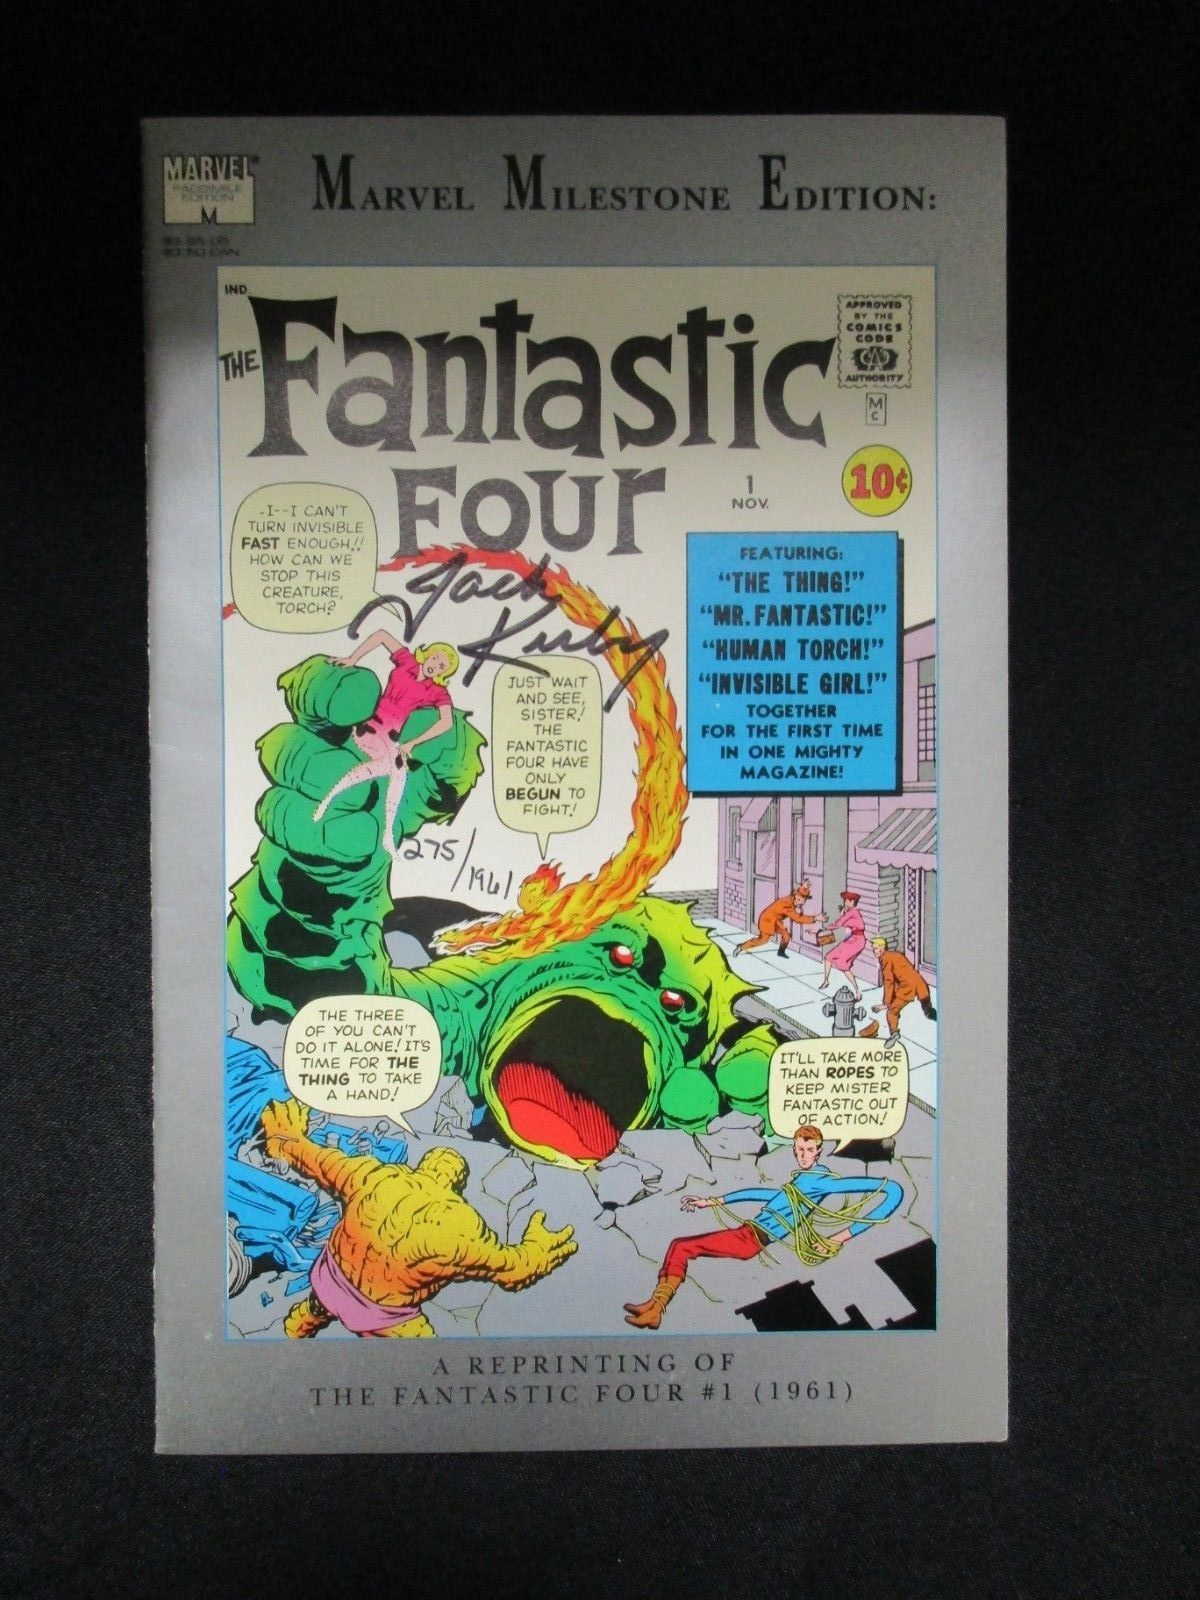 MARVEL MILESTONE FANTASTIC FOUR 1 * SIGNED BY JACK KIRBY W/ COA * # 275 OF 1961